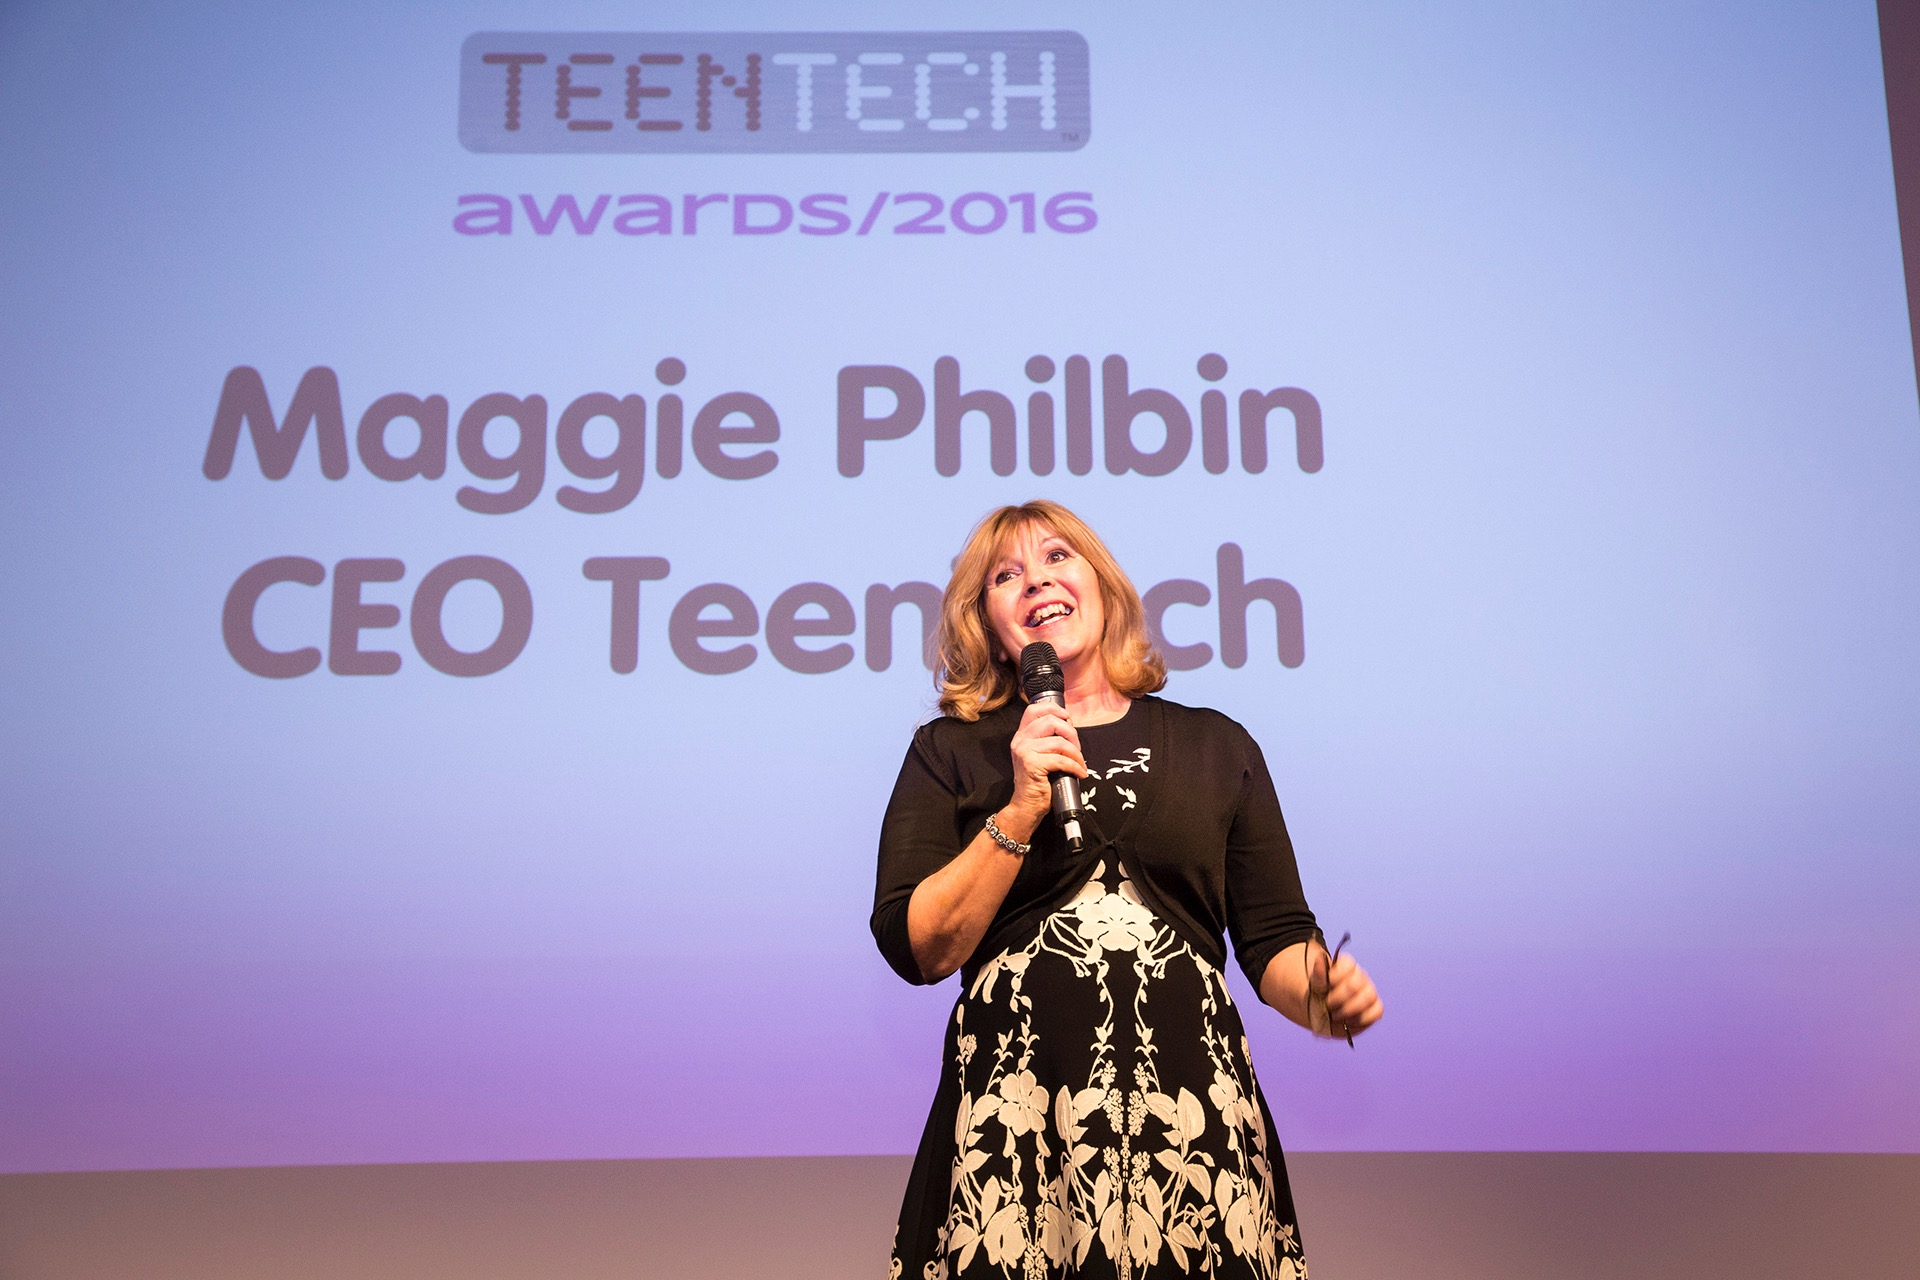 Chaos Created launches new website for television presenter and TeenTech CEO Maggie Philbin